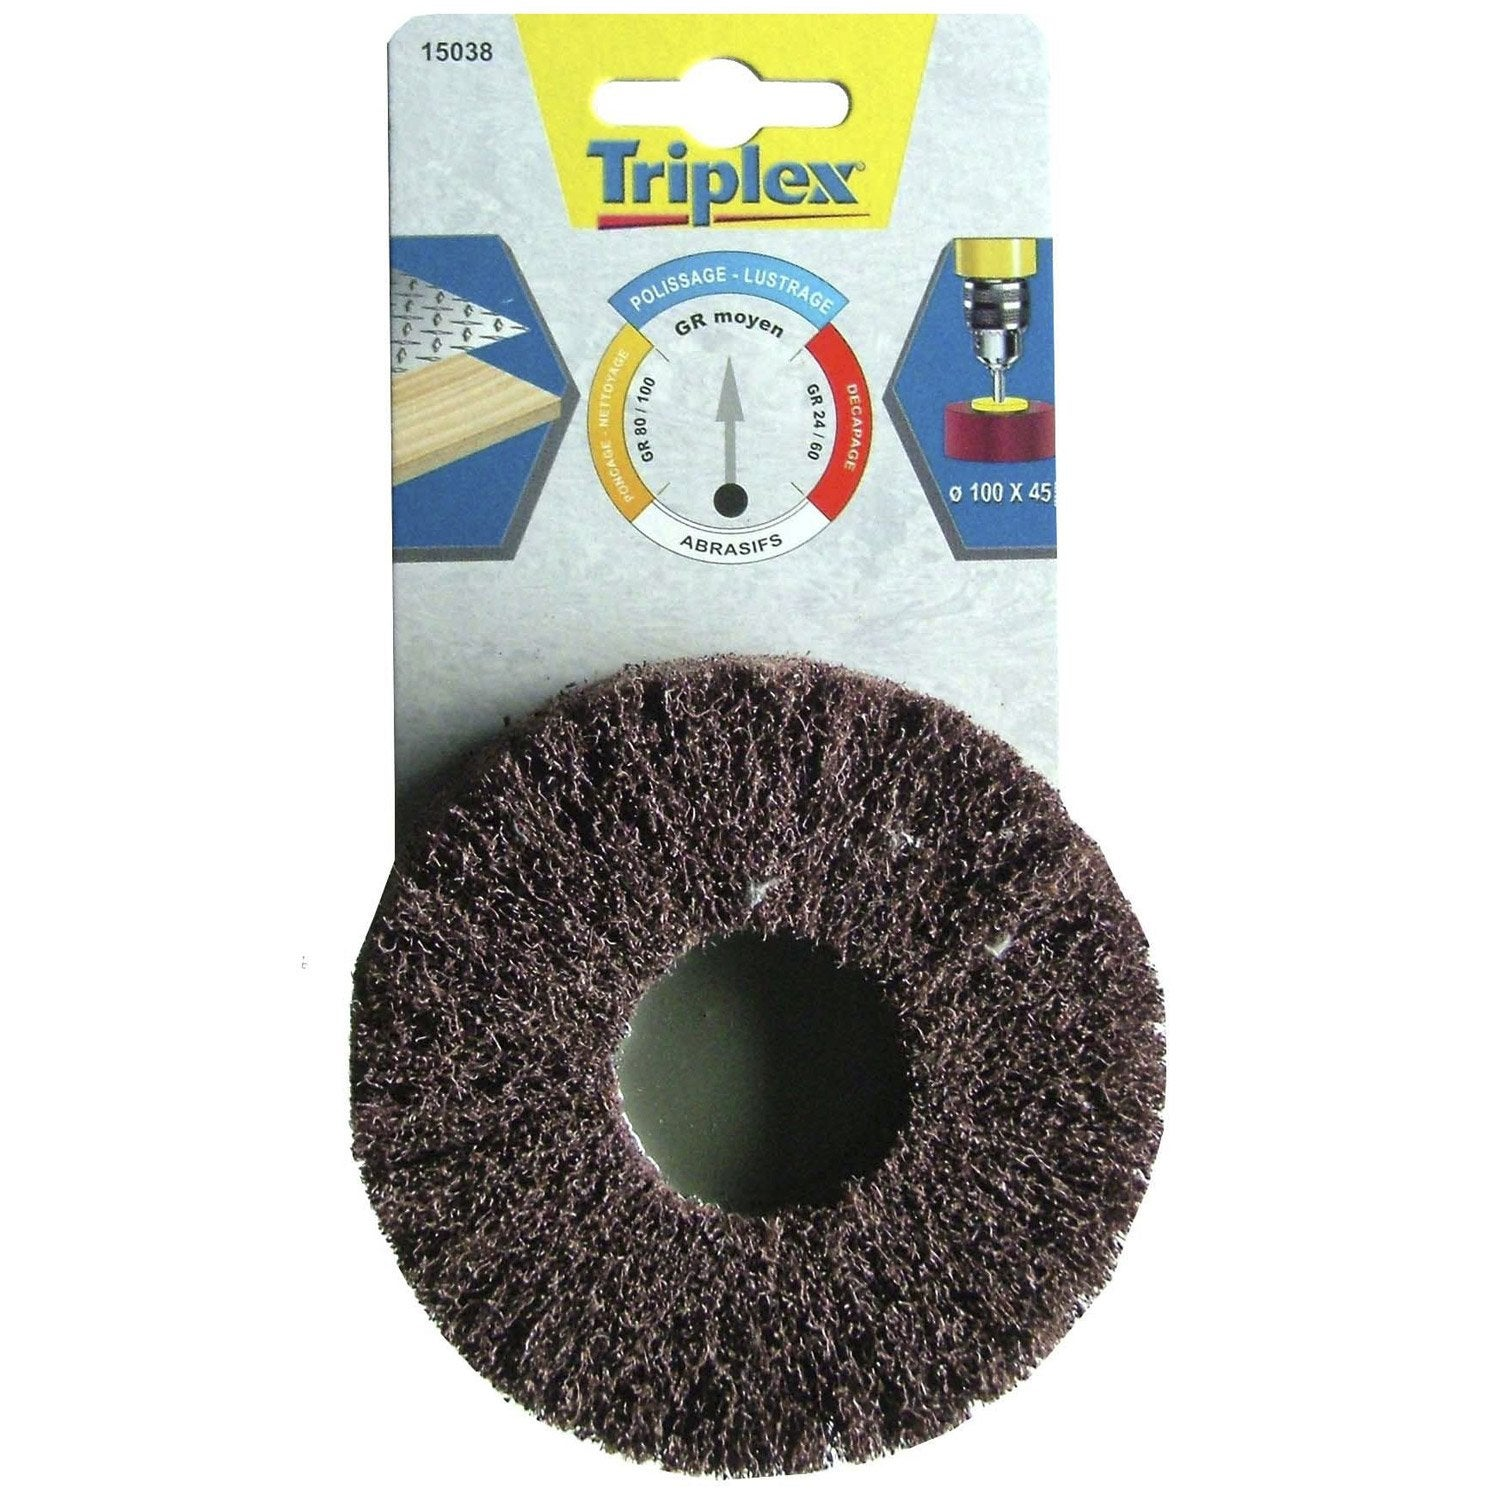 Roue tivoly 100 x 45 mm grains 80 leroy merlin - Leroy merlin scarificateur ...